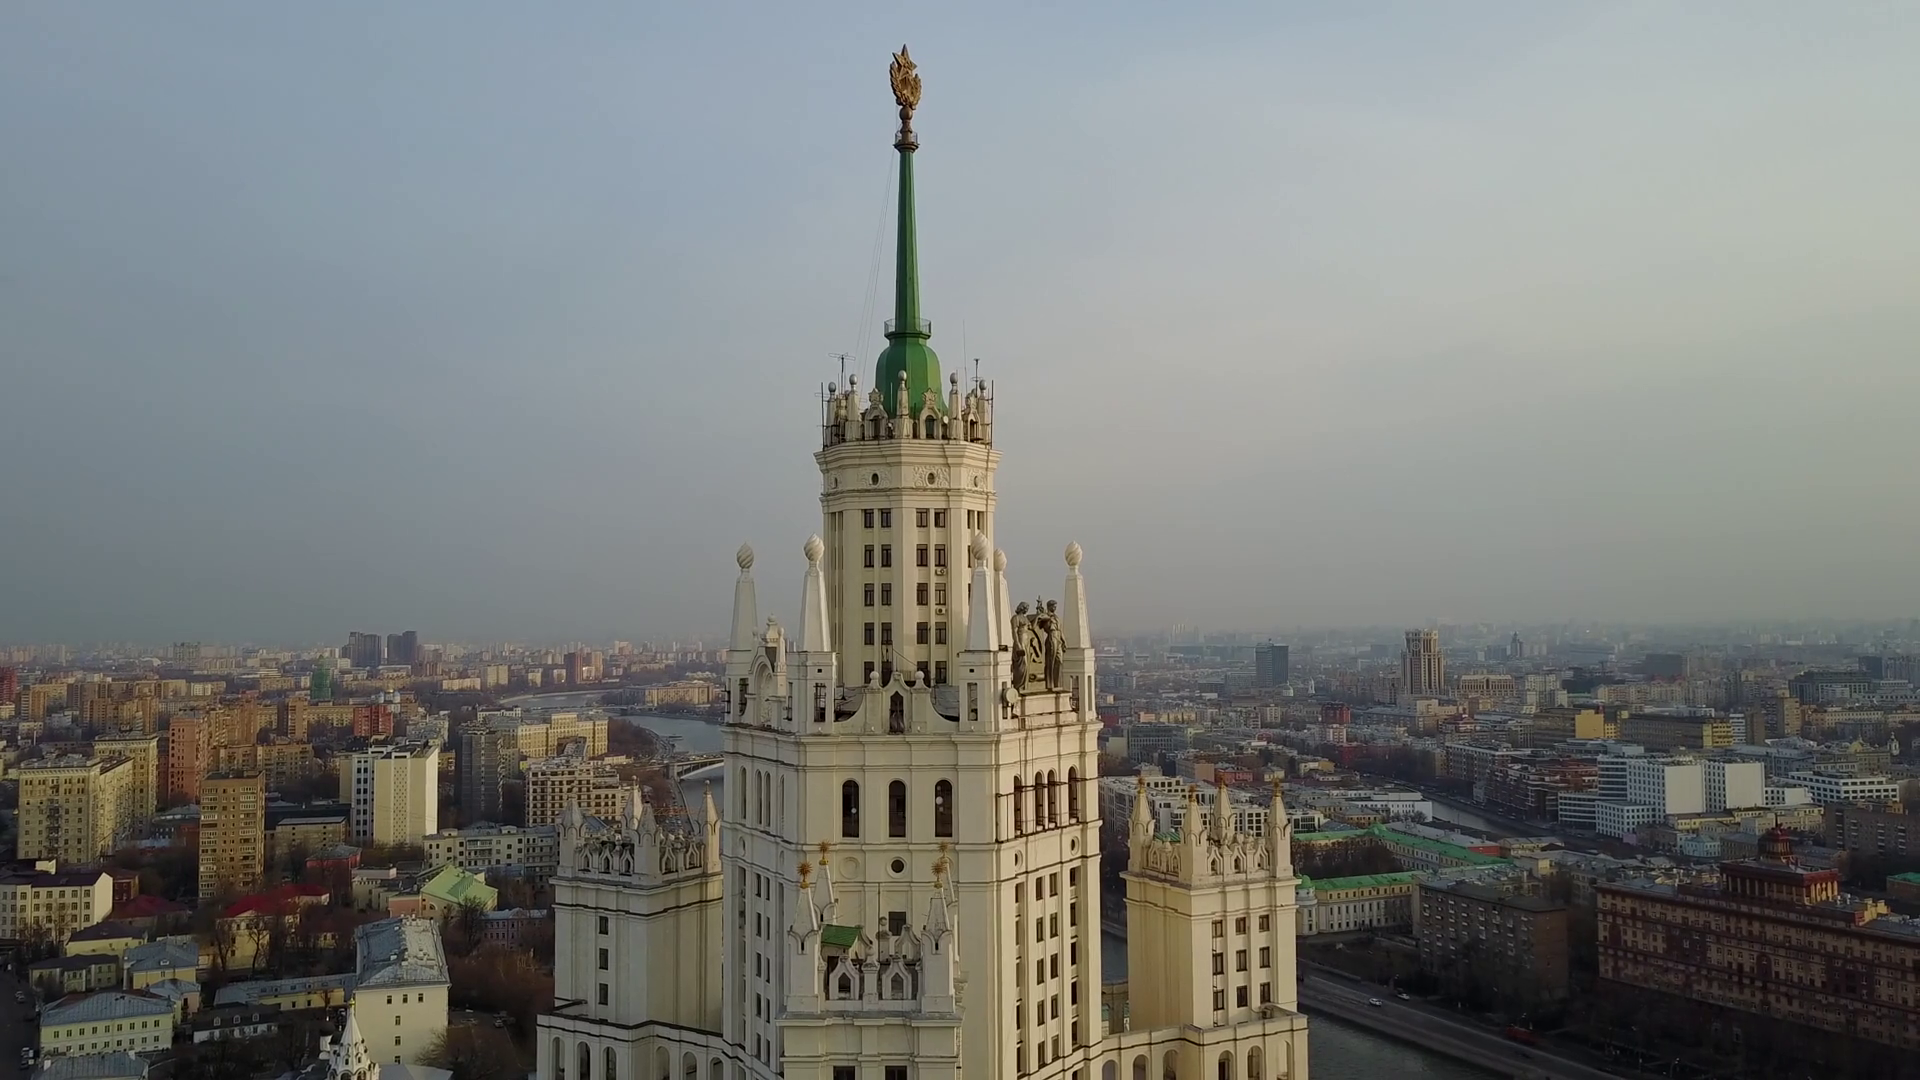 Moscow Old Historical Building Stock Video Footage - VideoBlocks